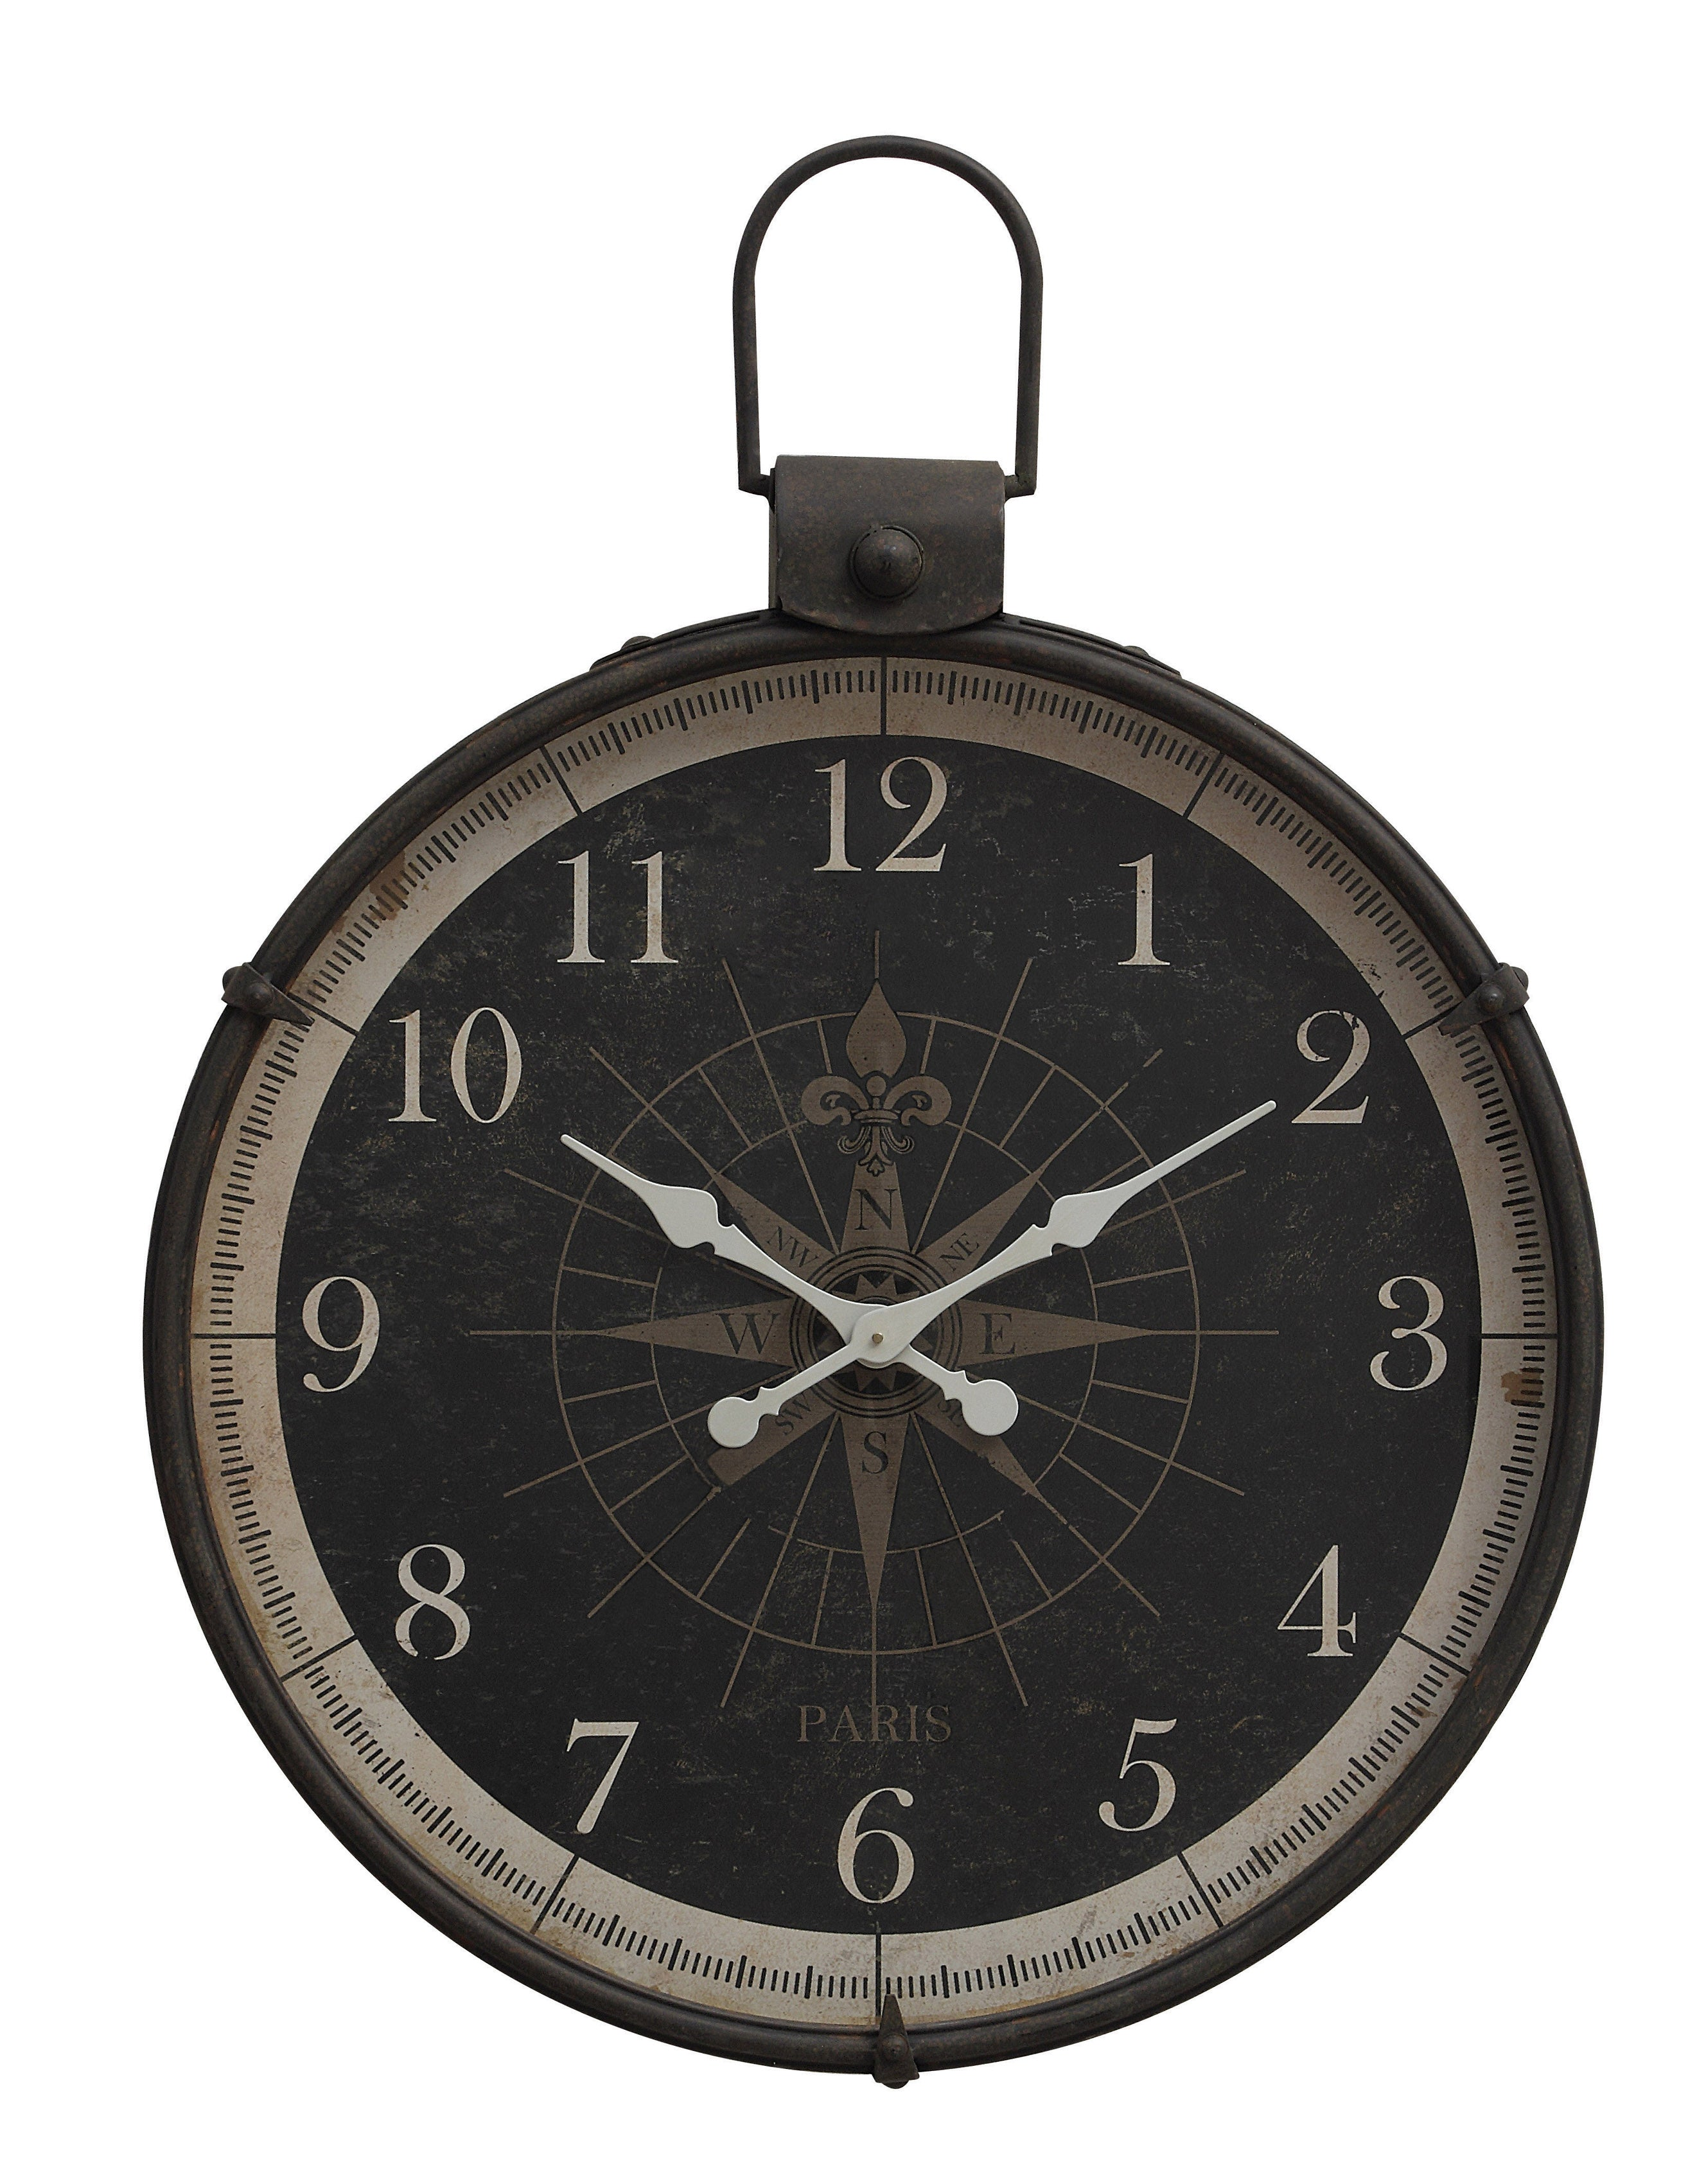 Black Metal Wall Clock with Compass Image